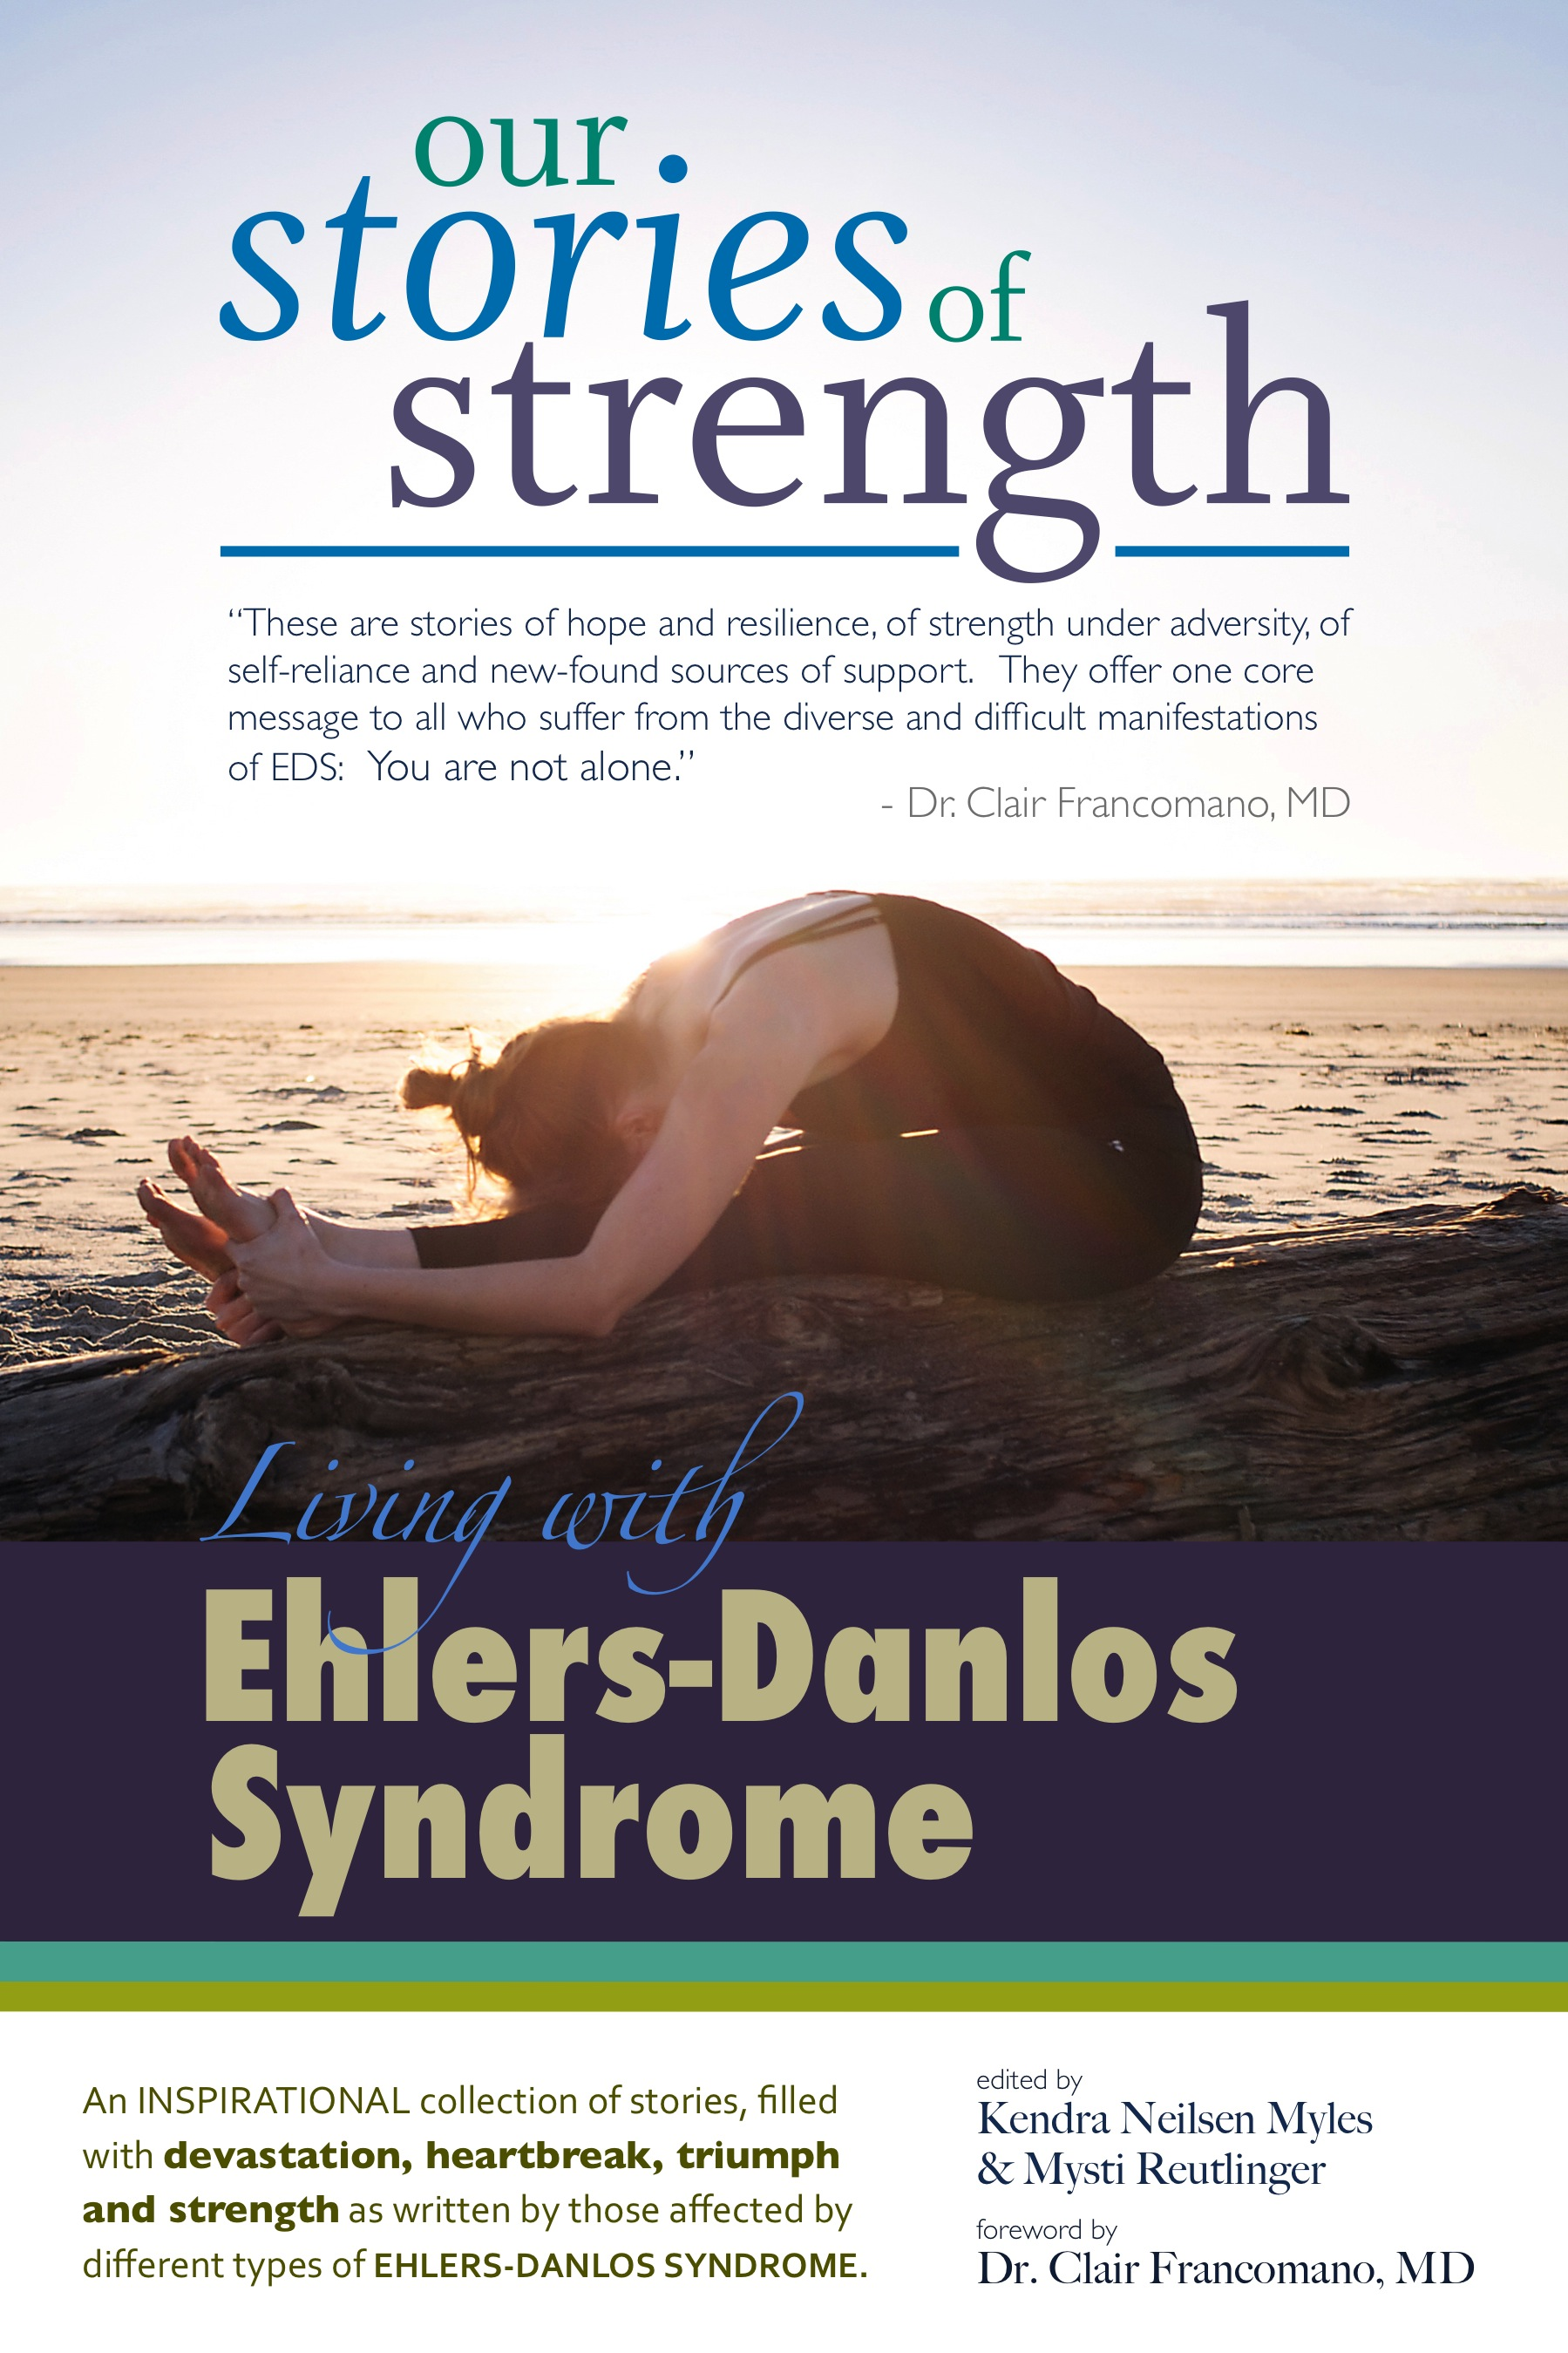 Our Stories of Strength – Living with Ehlers-Danlos Syndrome